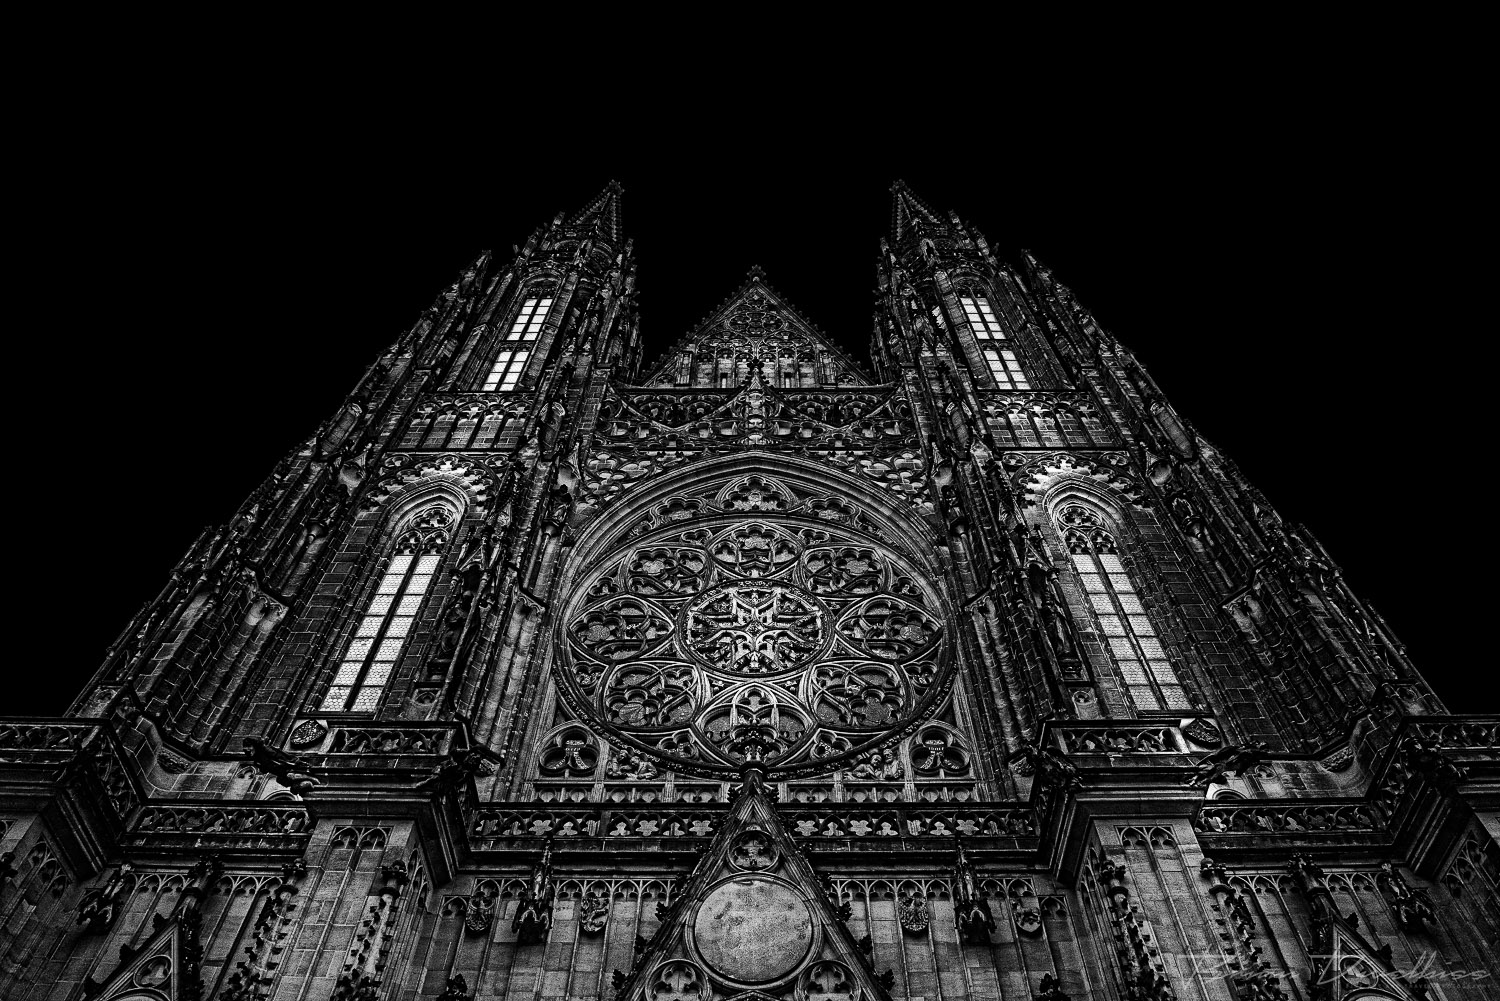 The western facade of Prague's St. Vitus Cathedral in black and white.